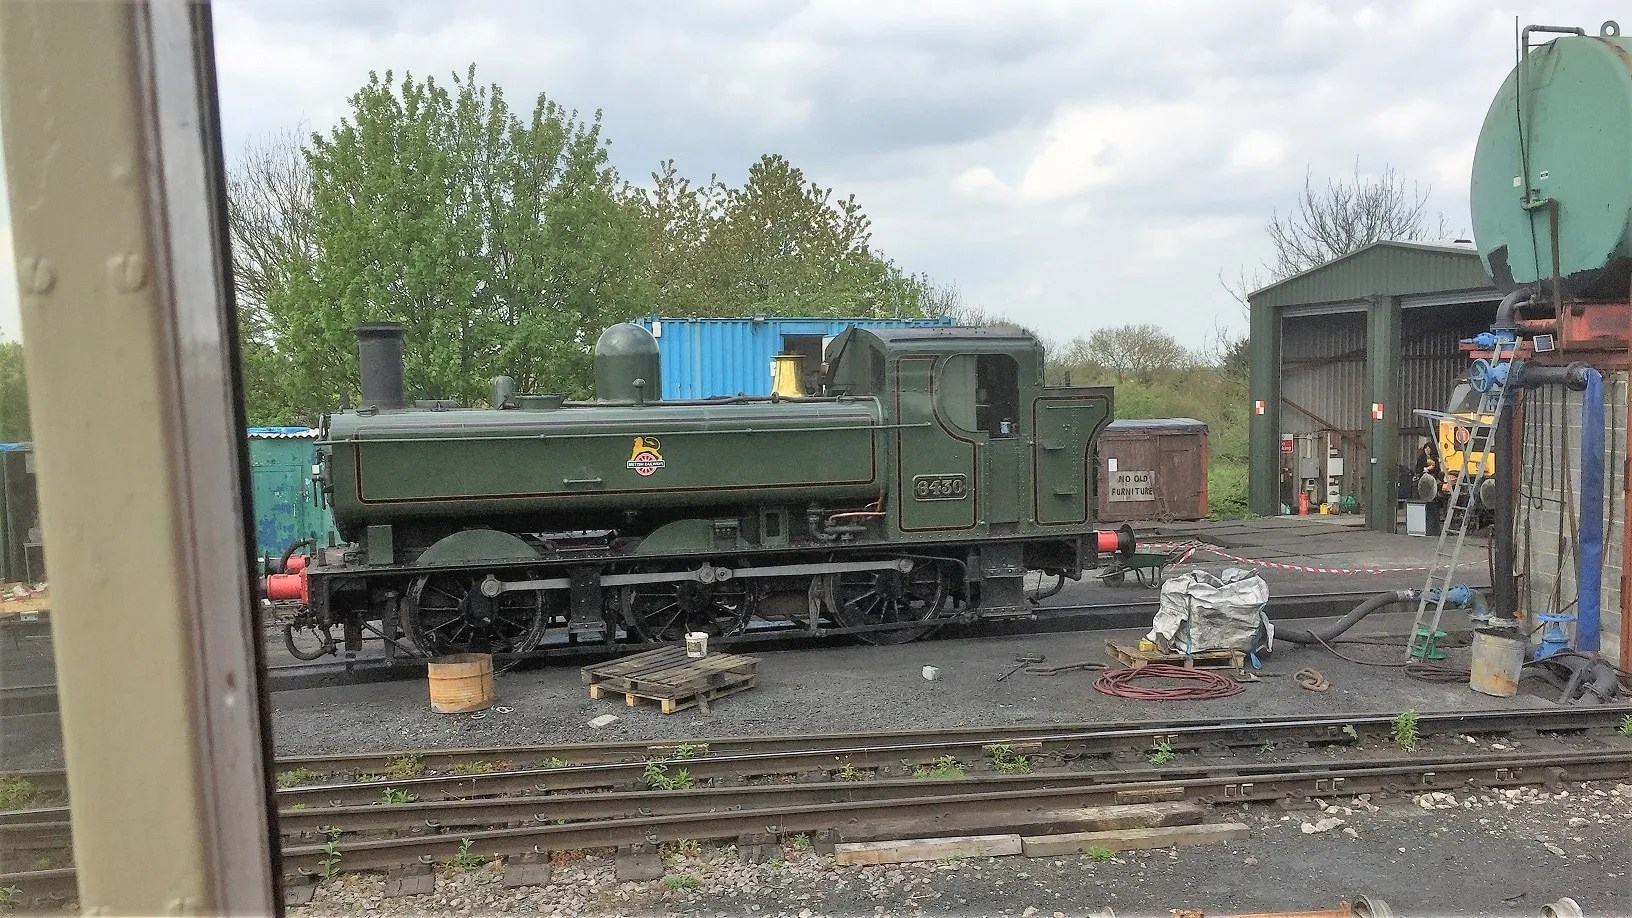 View of the yard at North Weald from cab of D6729